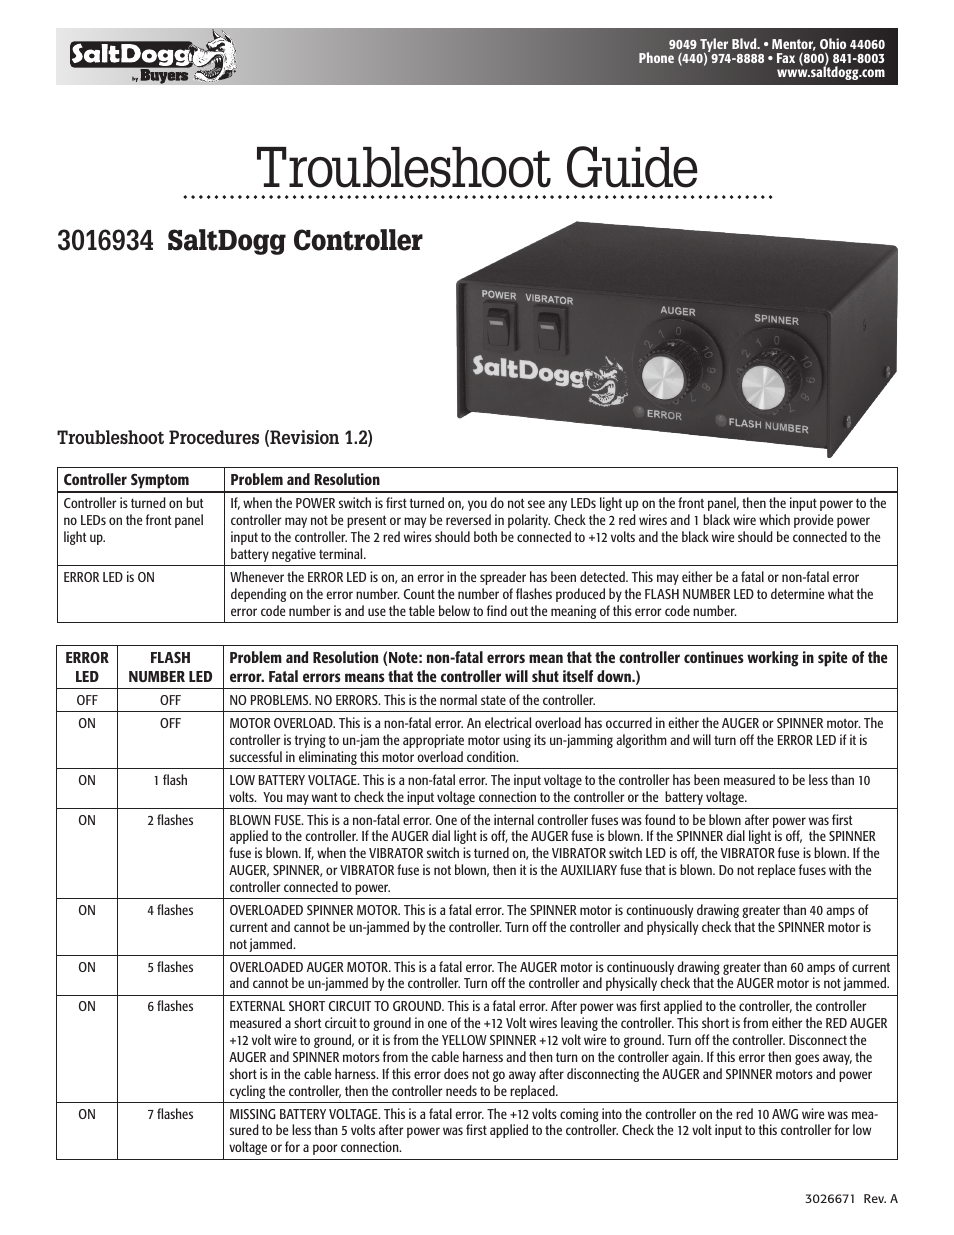 sa ogg controller 3016934 troubleshoot guide 92441ssa sa ogg controller 3016934 troubleshoot guide 92441ssa 9035000 1400465sse user manual 1 page also for controller 3016934 troubleshoot guide